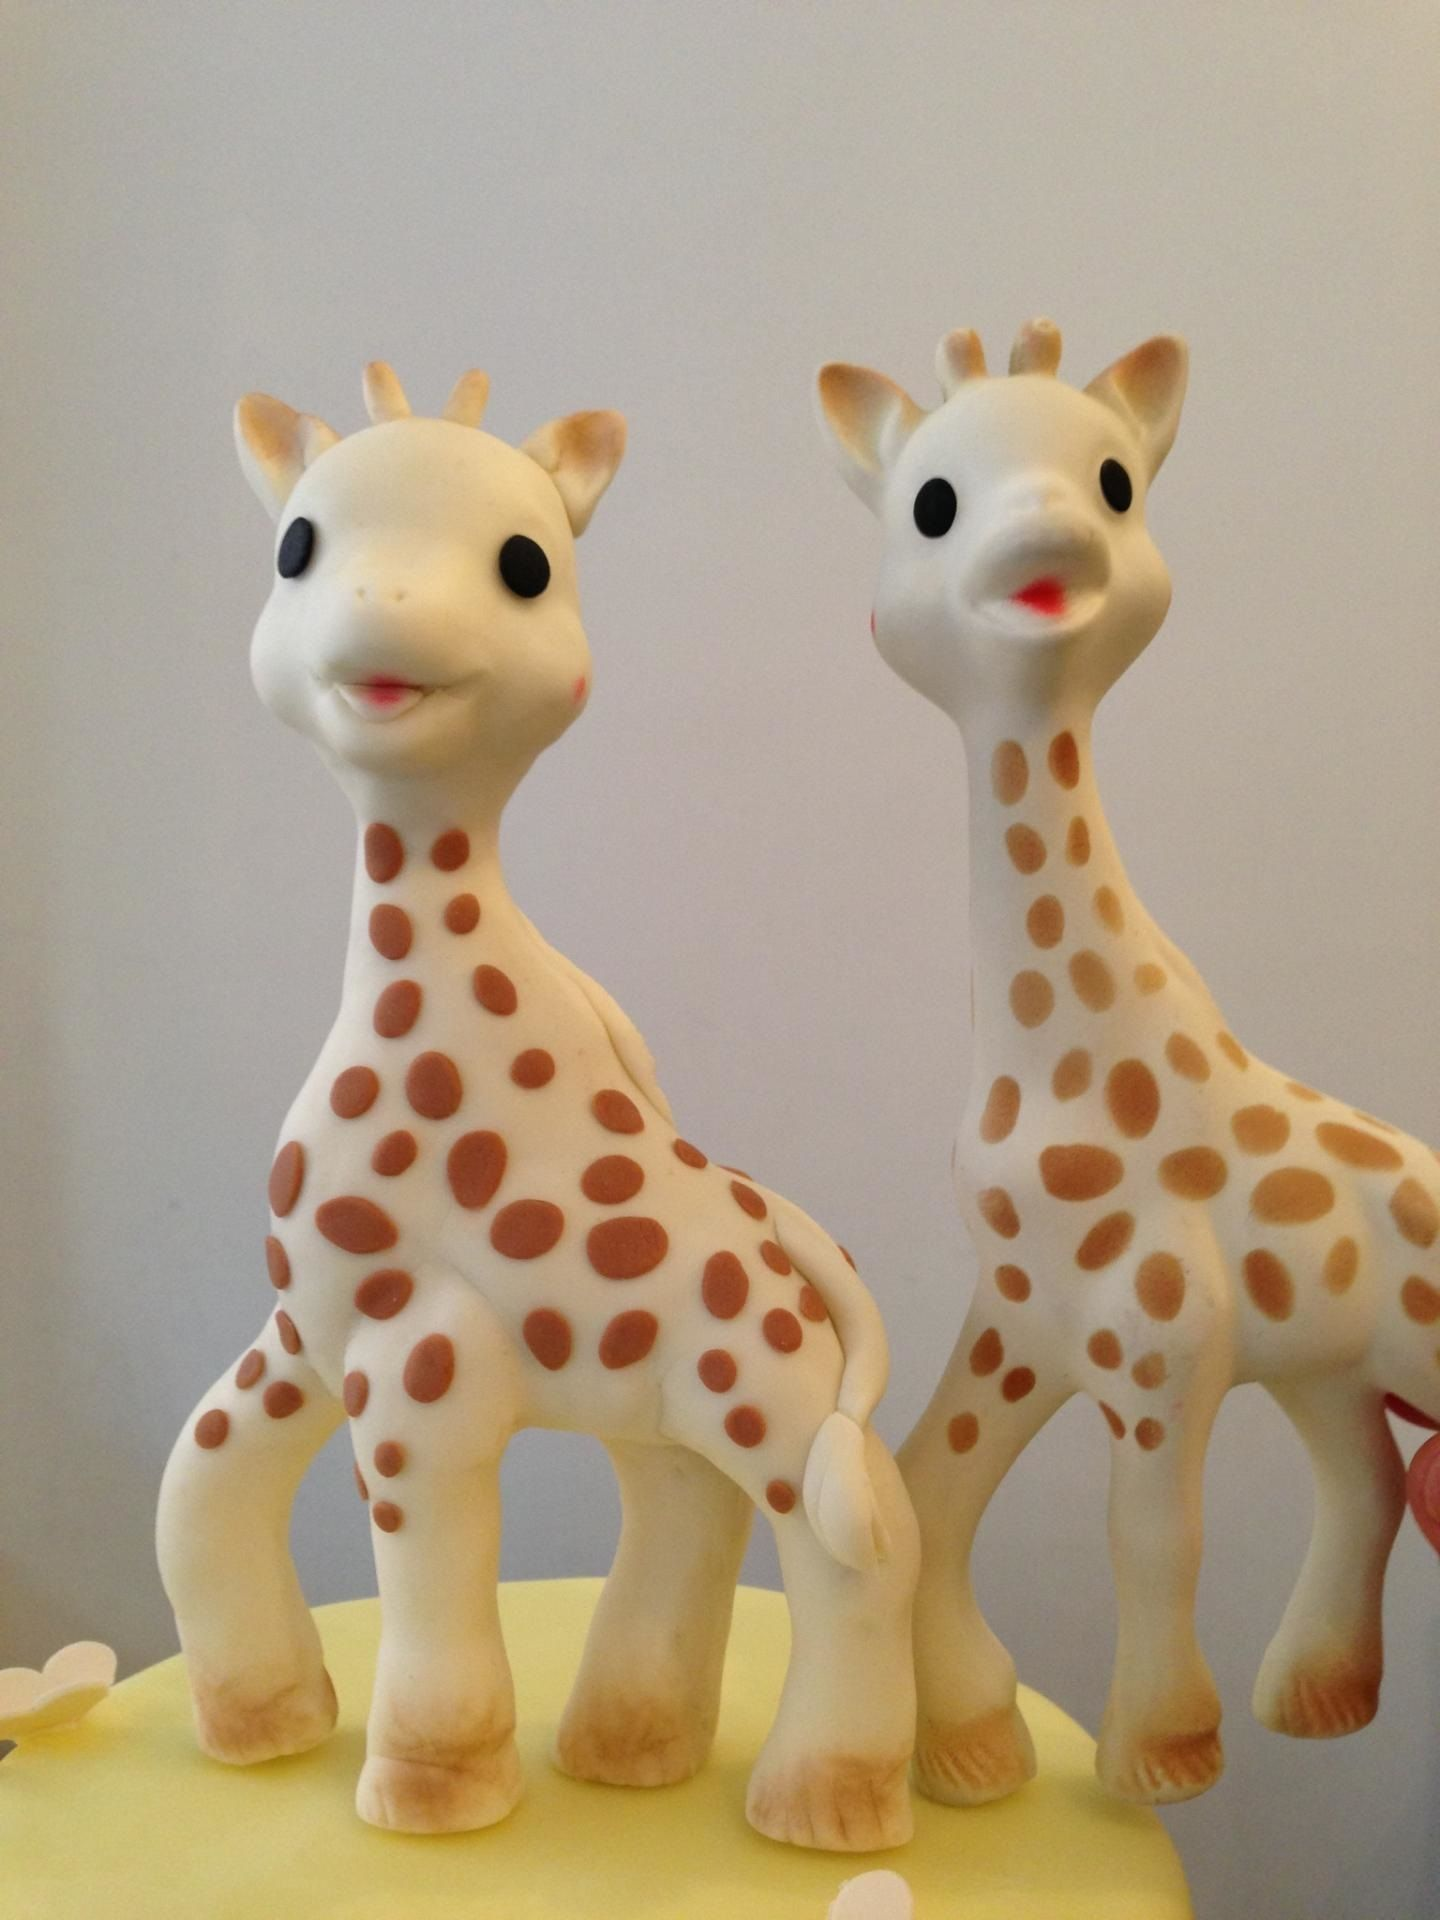 Twin Giraffe Cake Toppers by Silk Cakes